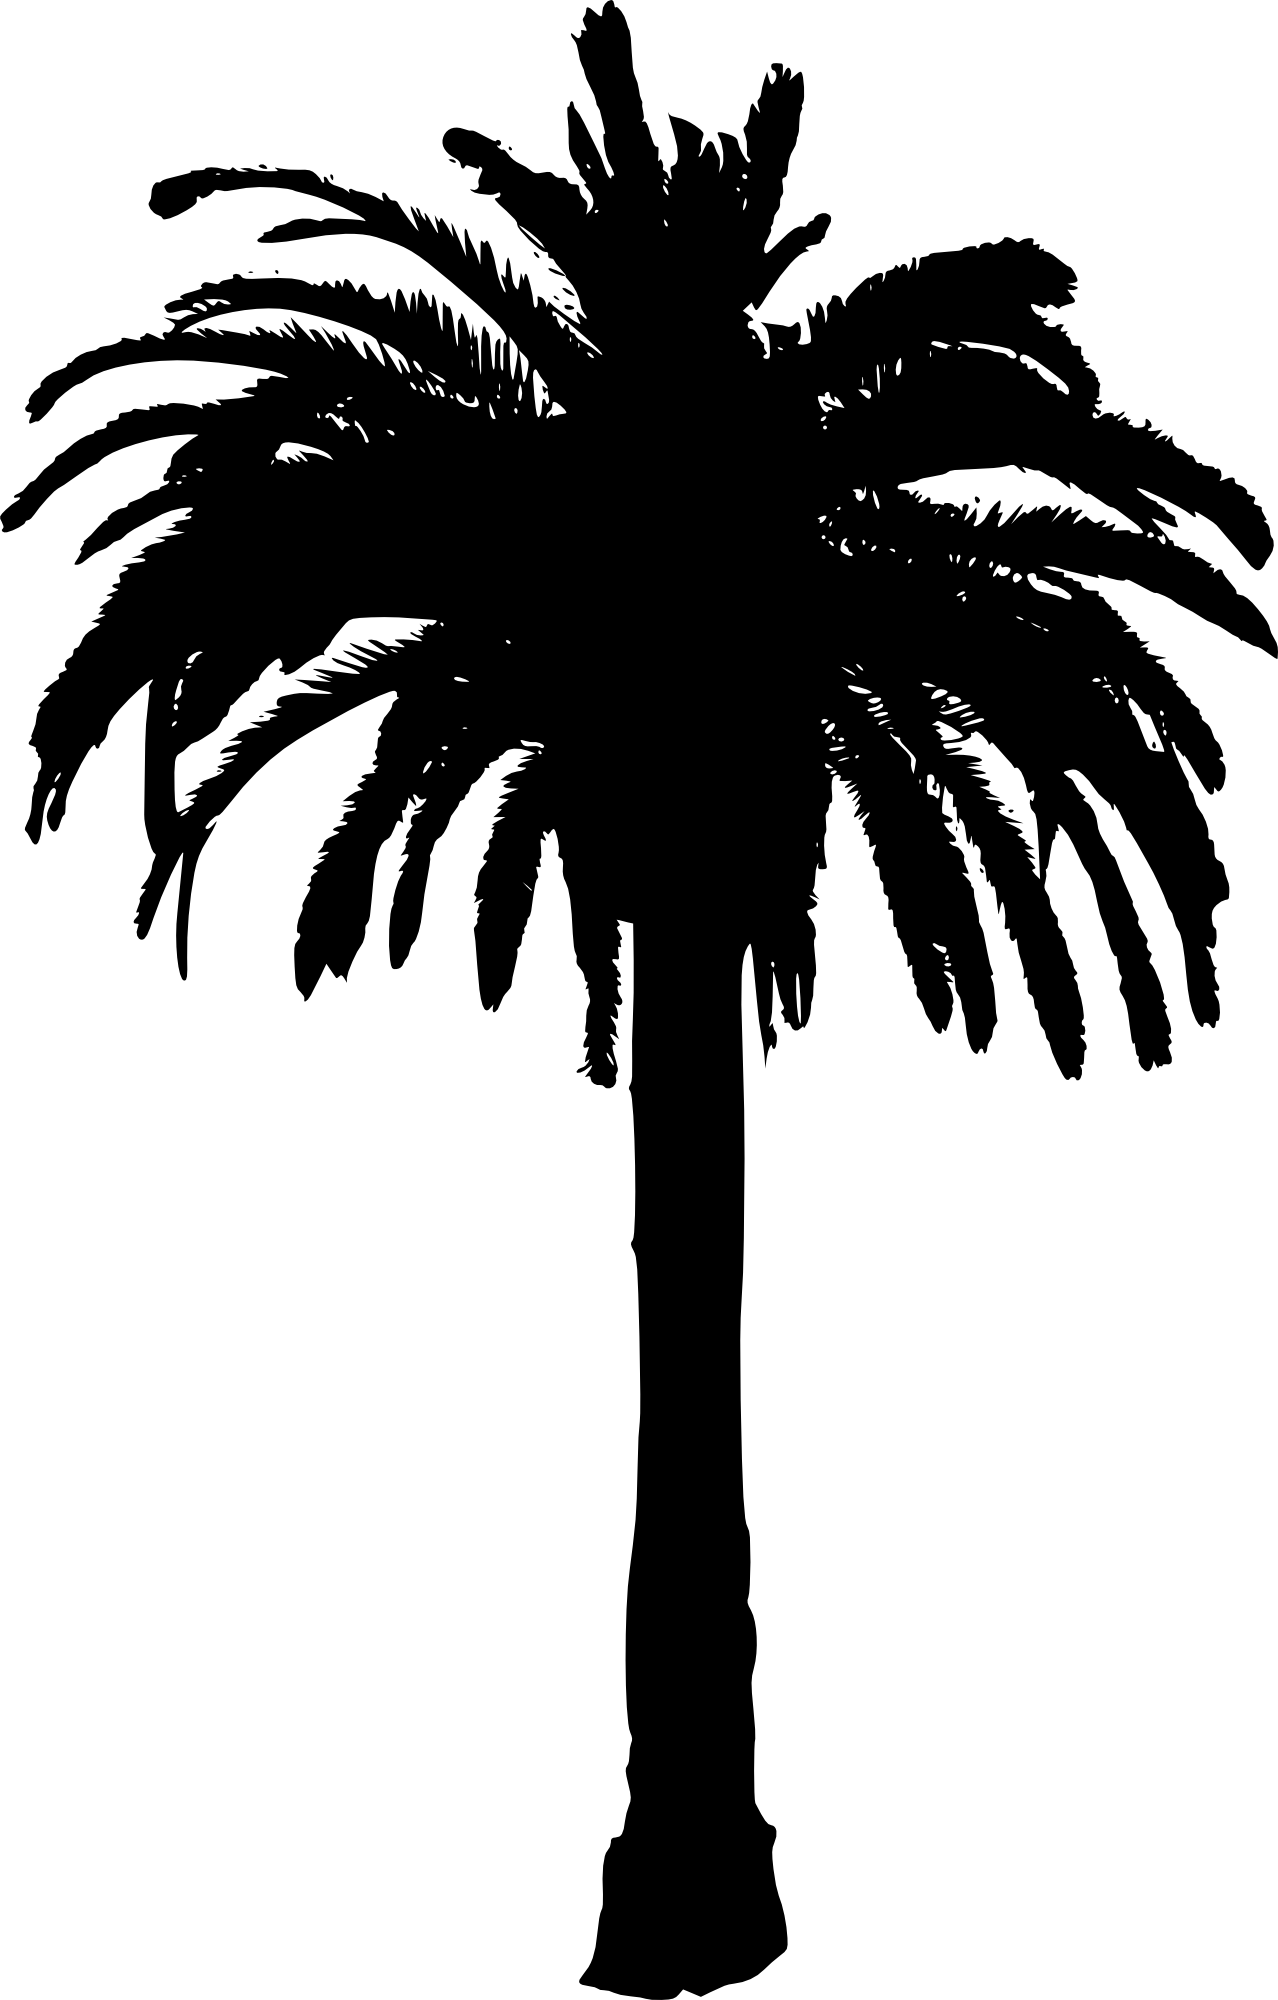 Palm tree clipart clip art transparent Bamboo Forest Drawing at GetDrawings.com | Free for personal use ... clip art transparent